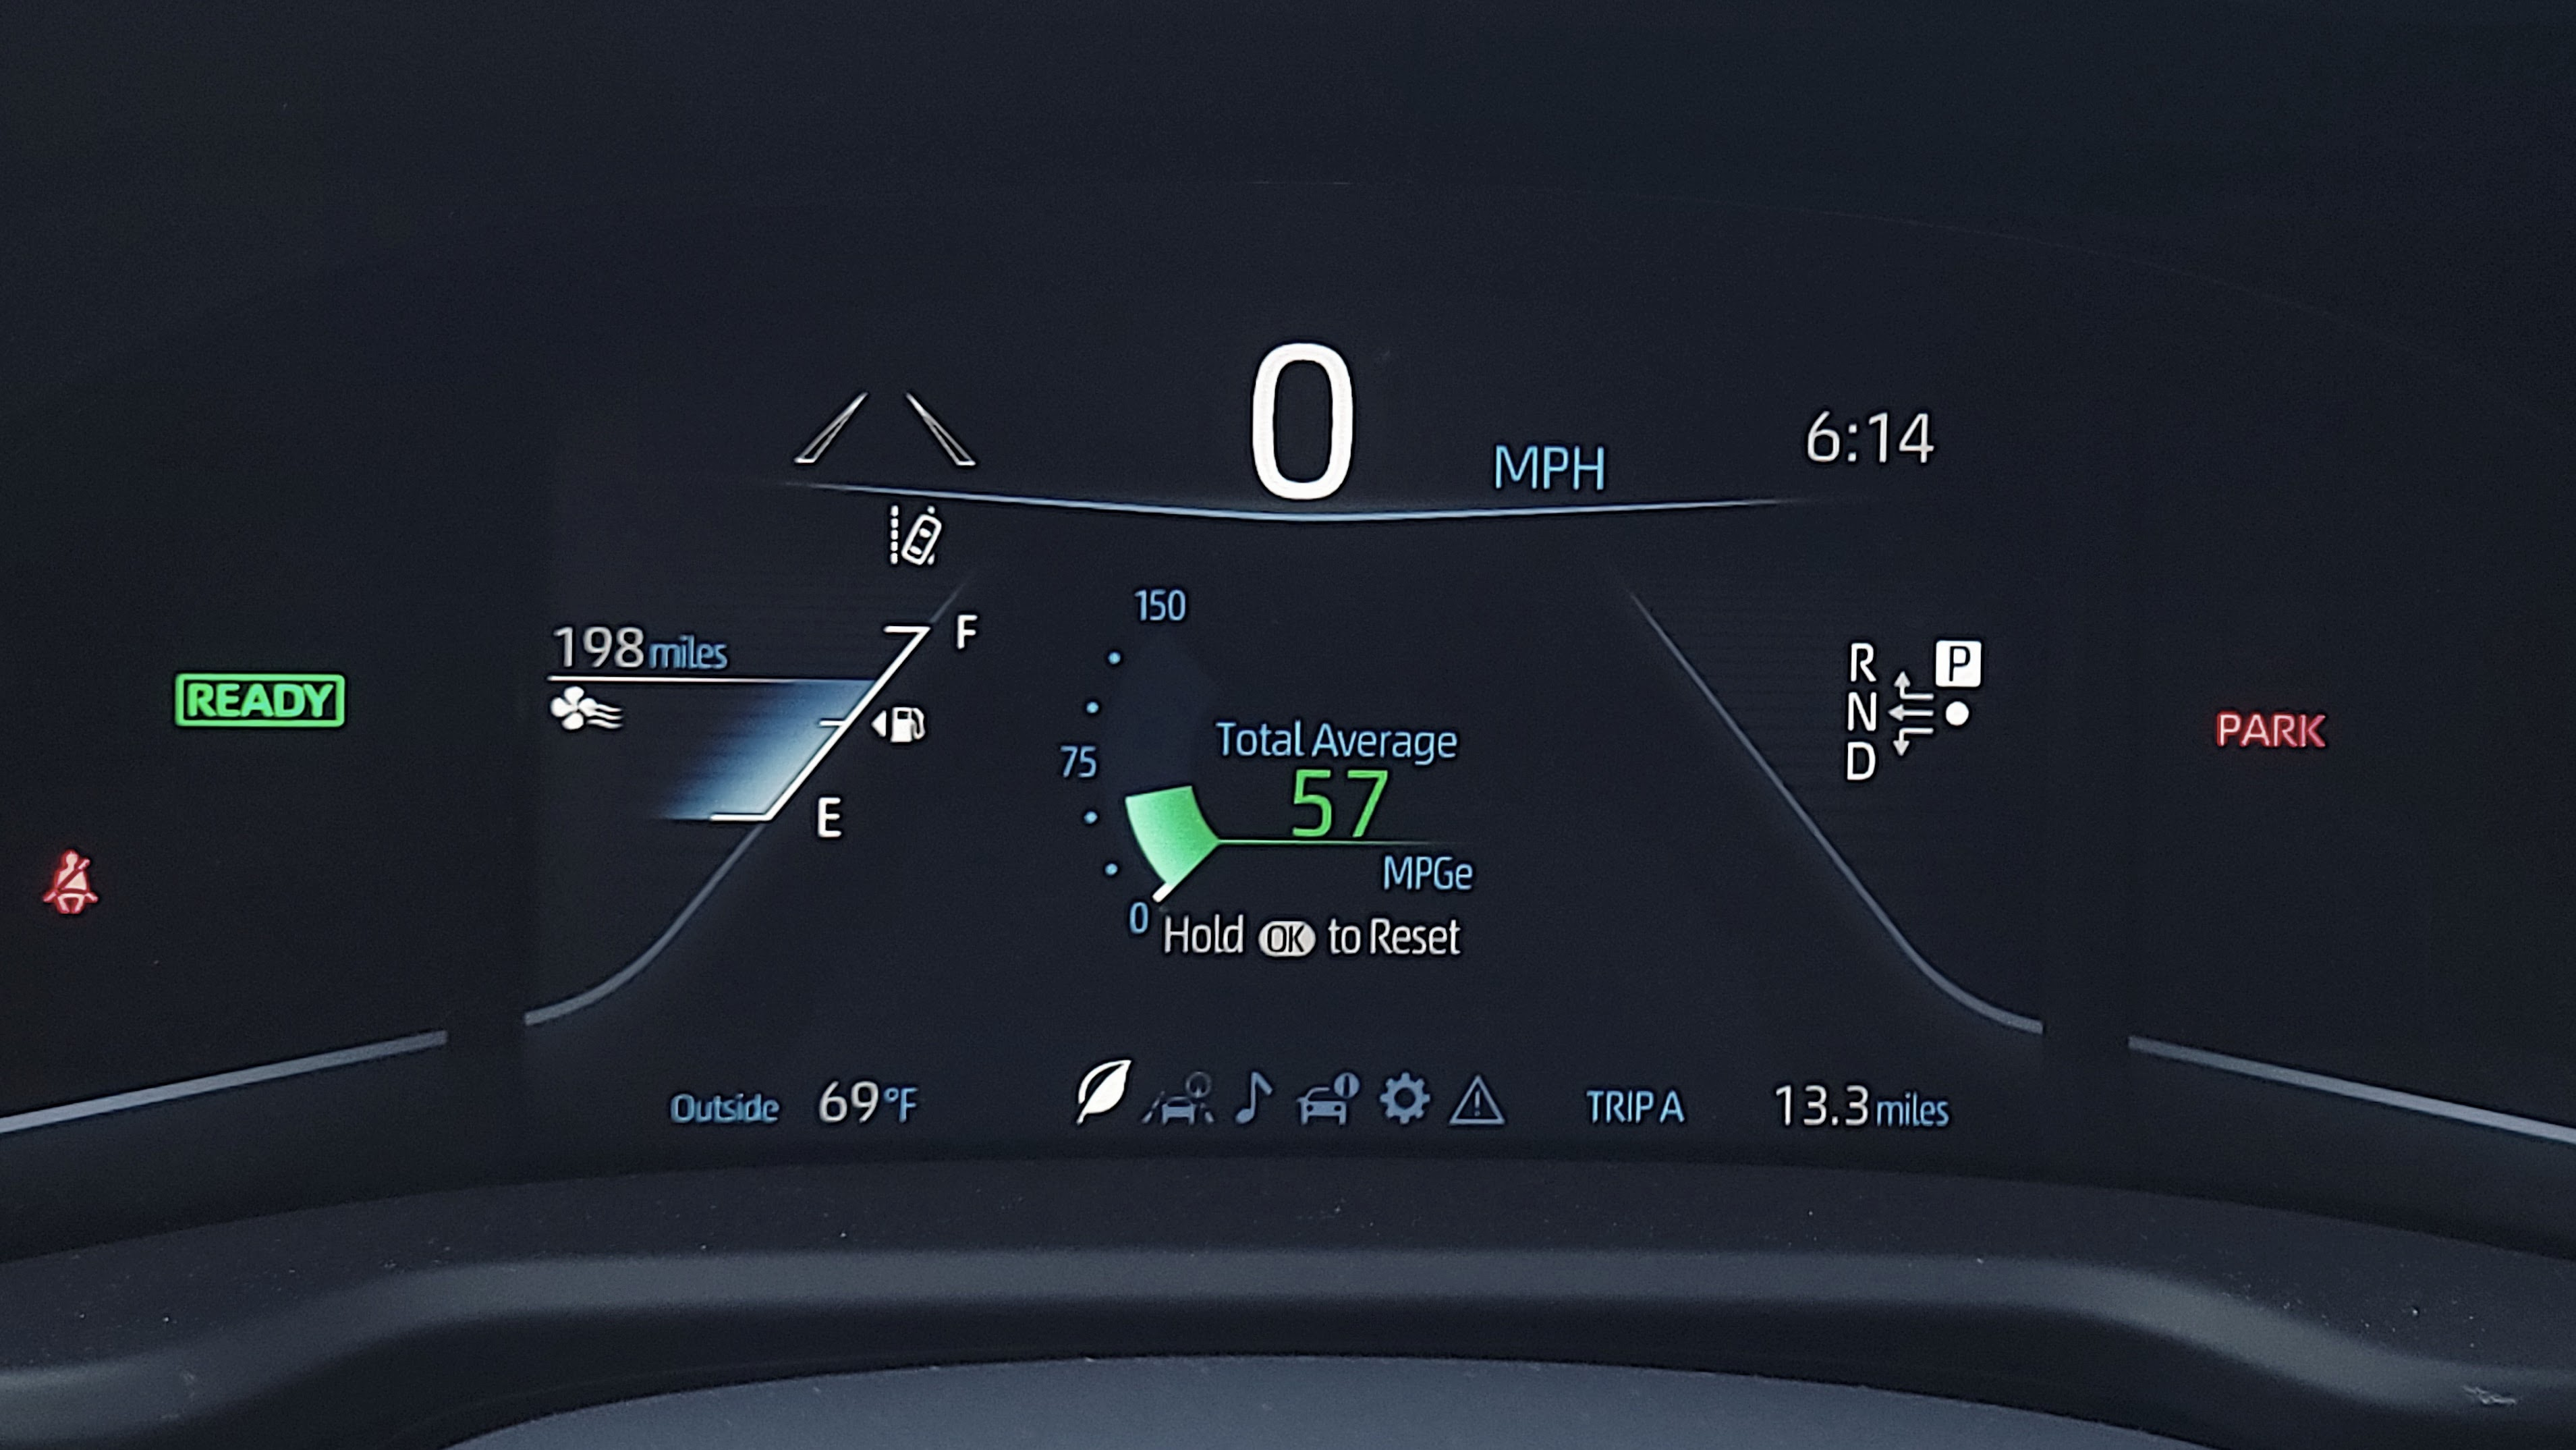 Instrument cluster display in the Toyota Mirai (2021)